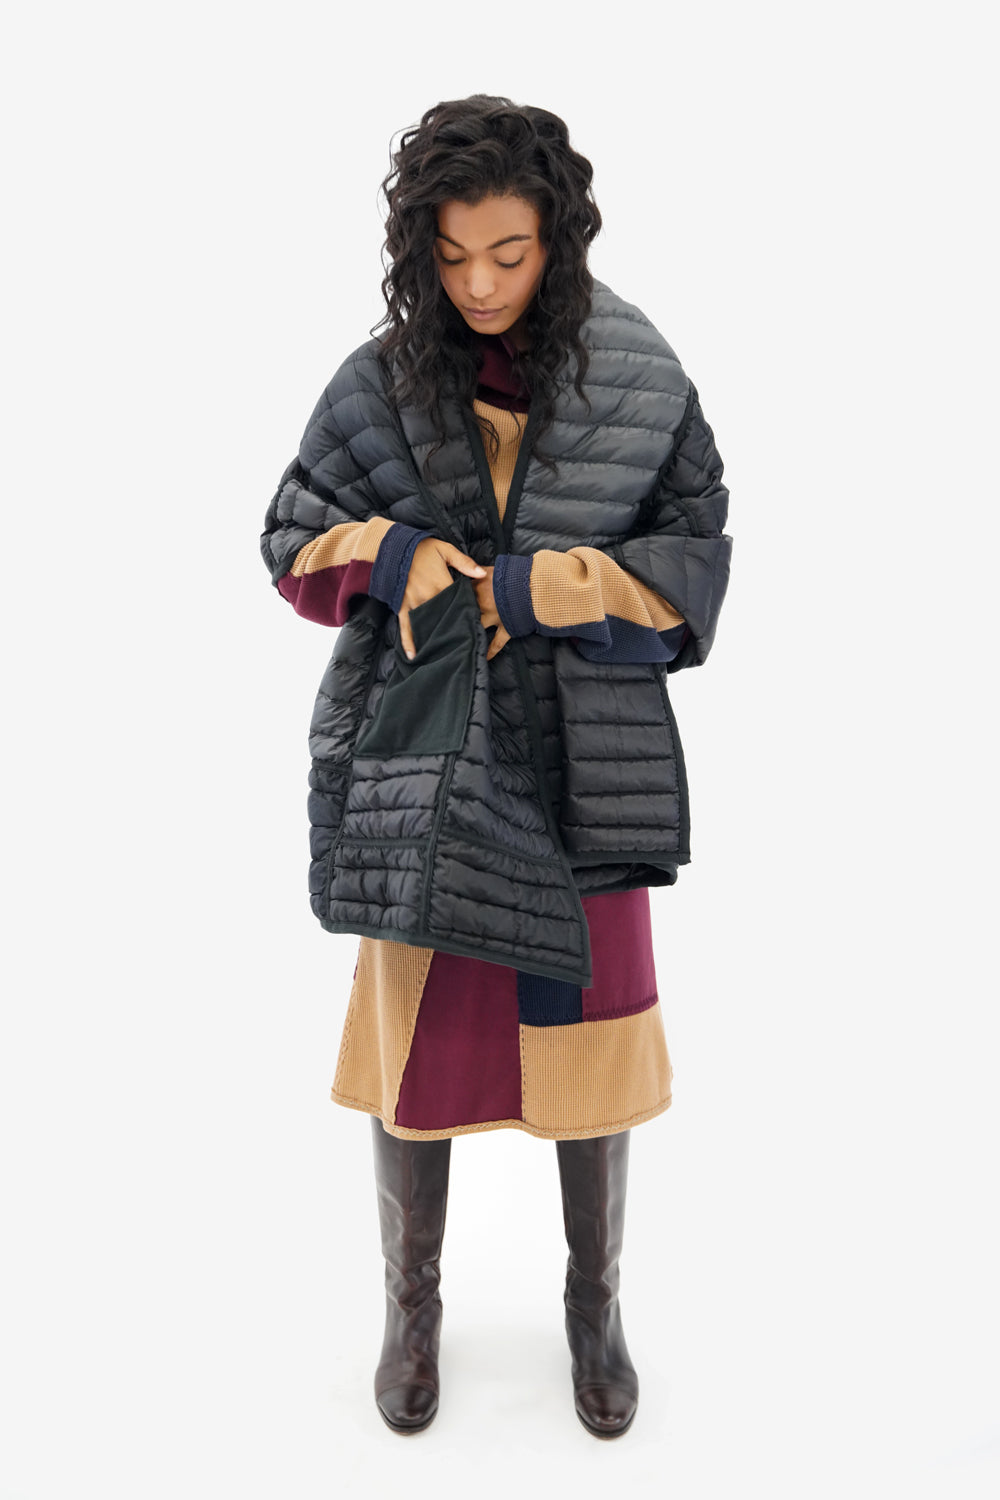 Alabama Chanin Reclaimed Down Wrap in Black Sustainable Upcycled from Down Jackets